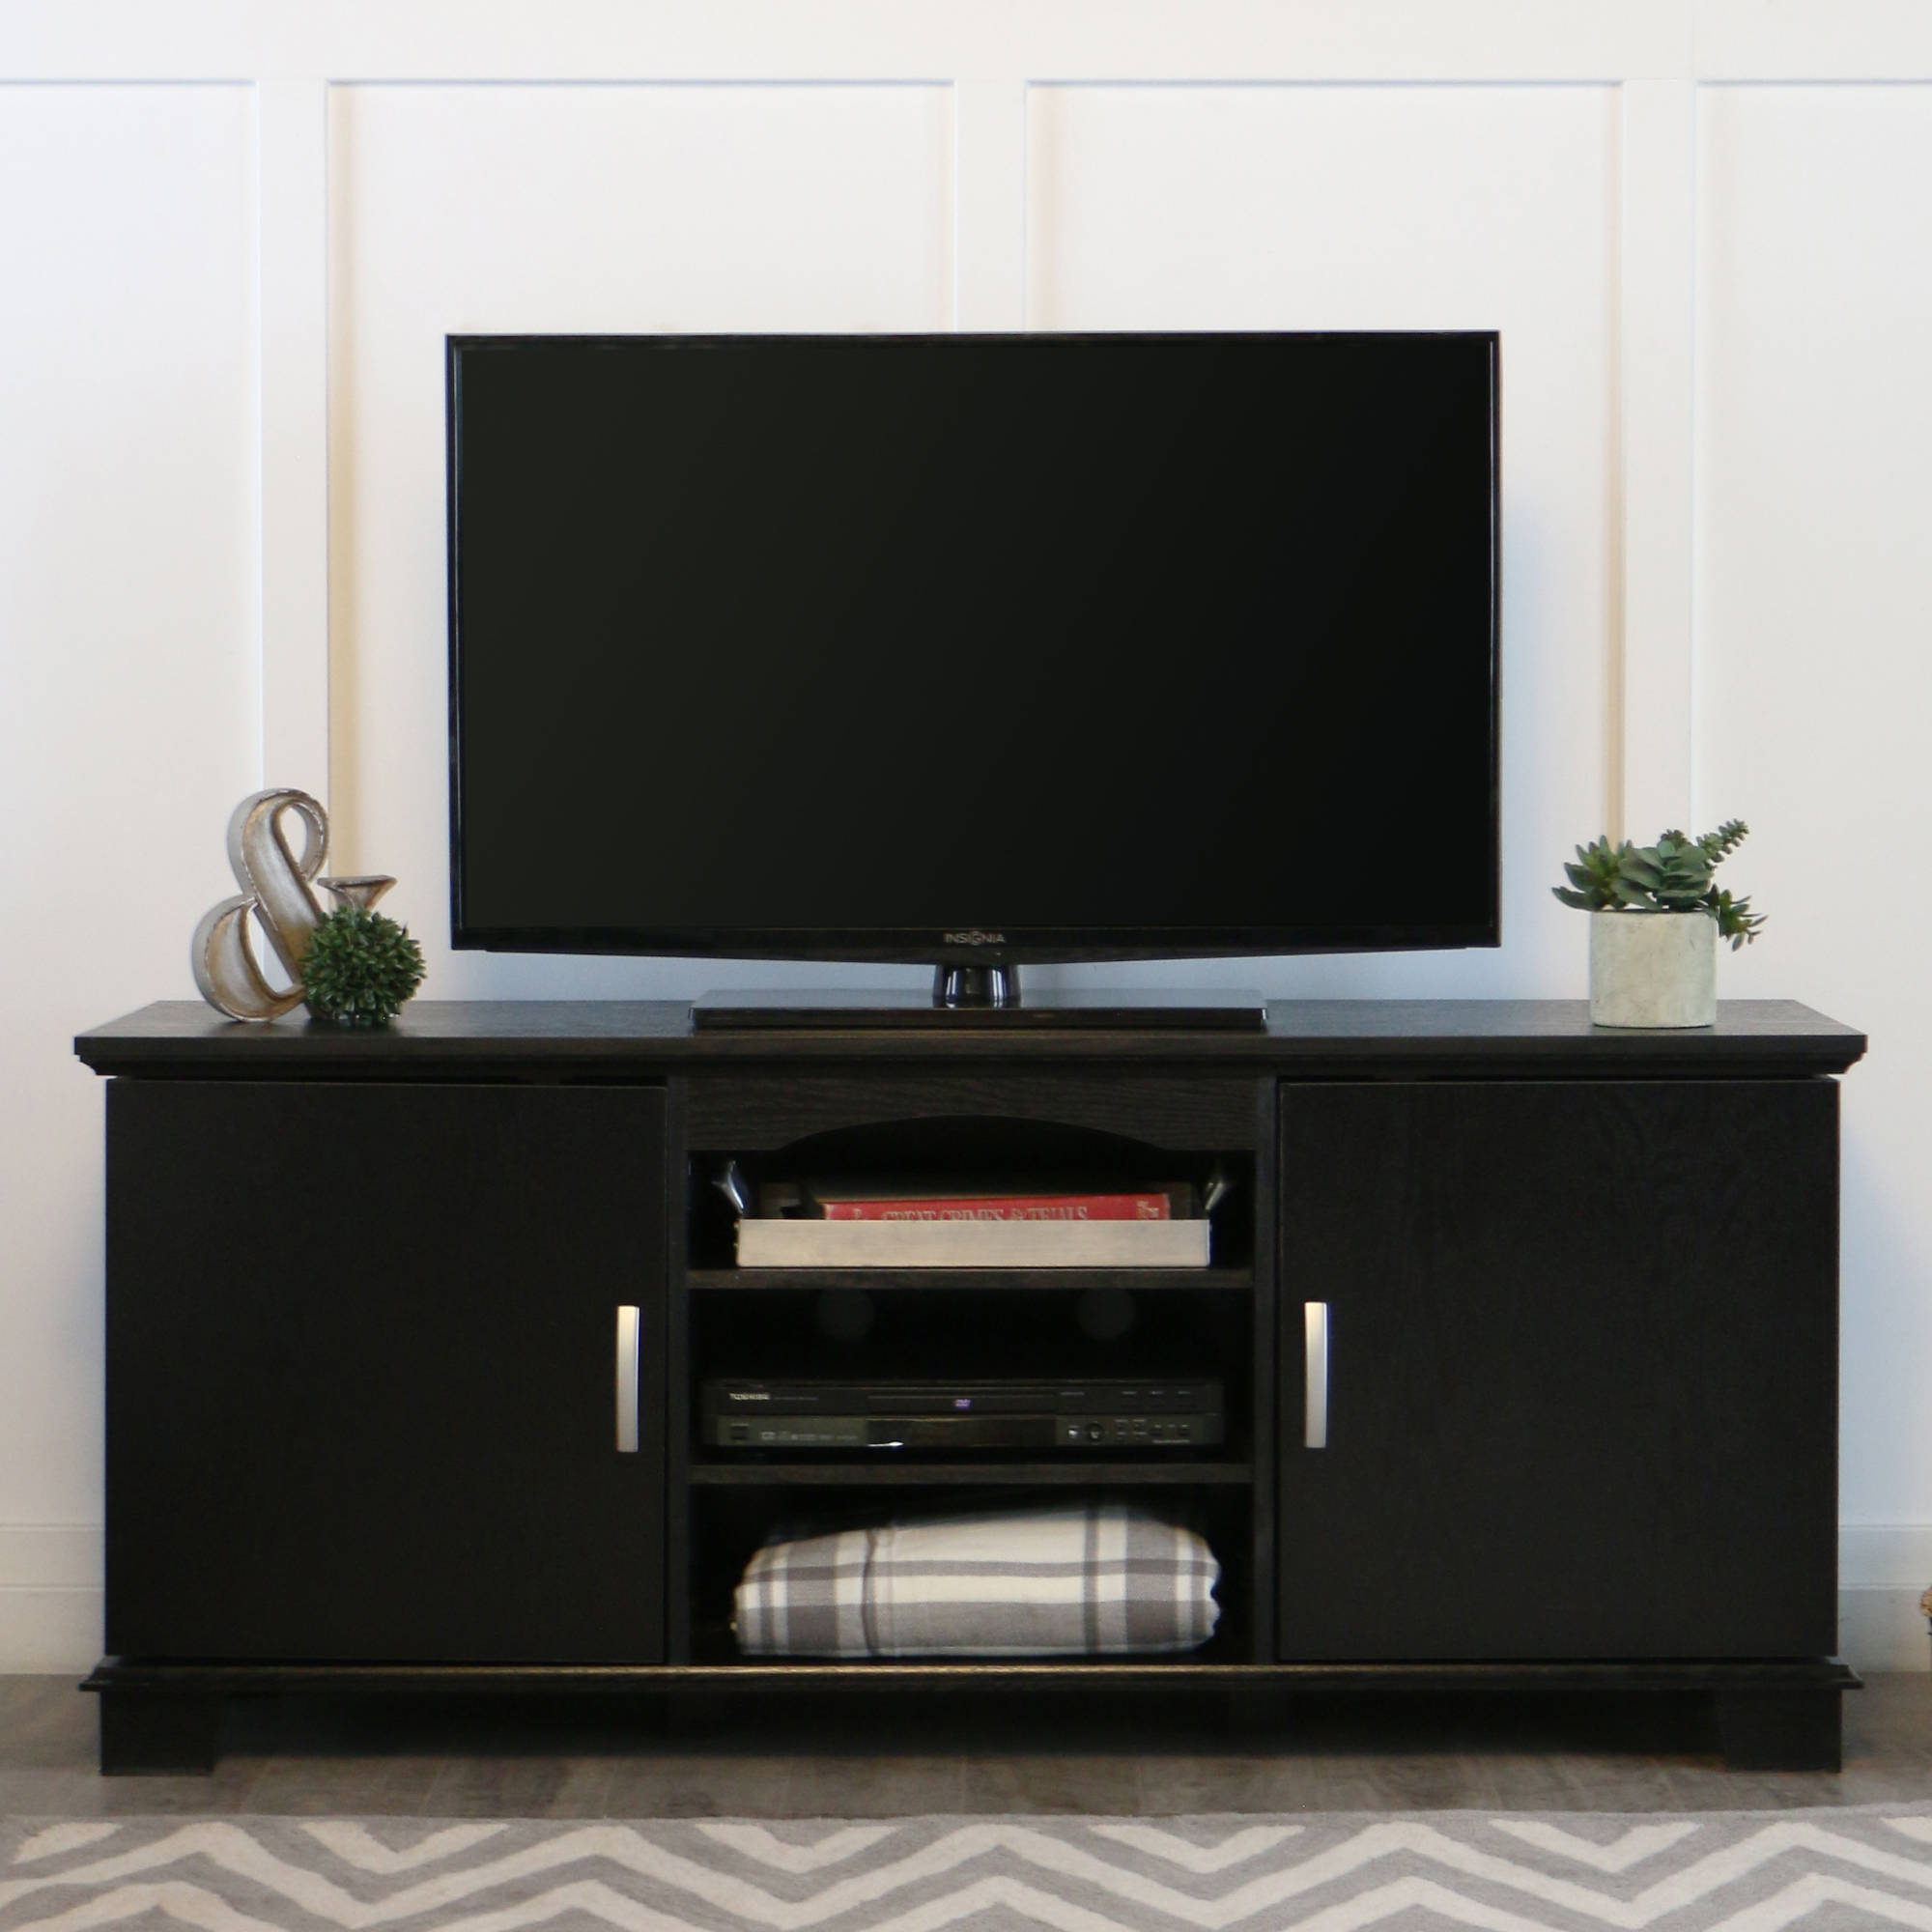 Excellent Espresso Tv Console 29 4845 Jpg V 1525464439 | Gacwar Regarding Oxford 70 Inch Tv Stands (View 8 of 30)